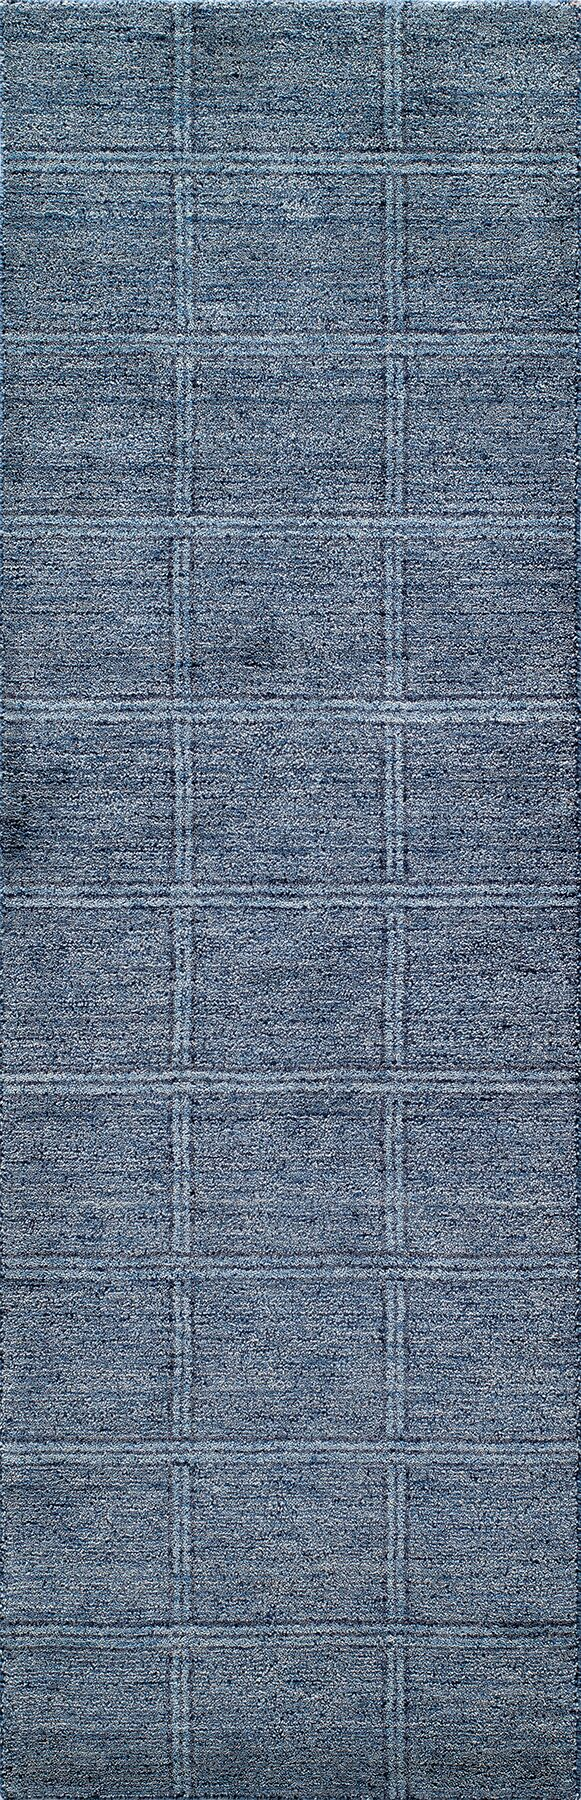 Haggins Hand-Knotted Denim Area Rug Rug Size: Rectangle 8' x 11'